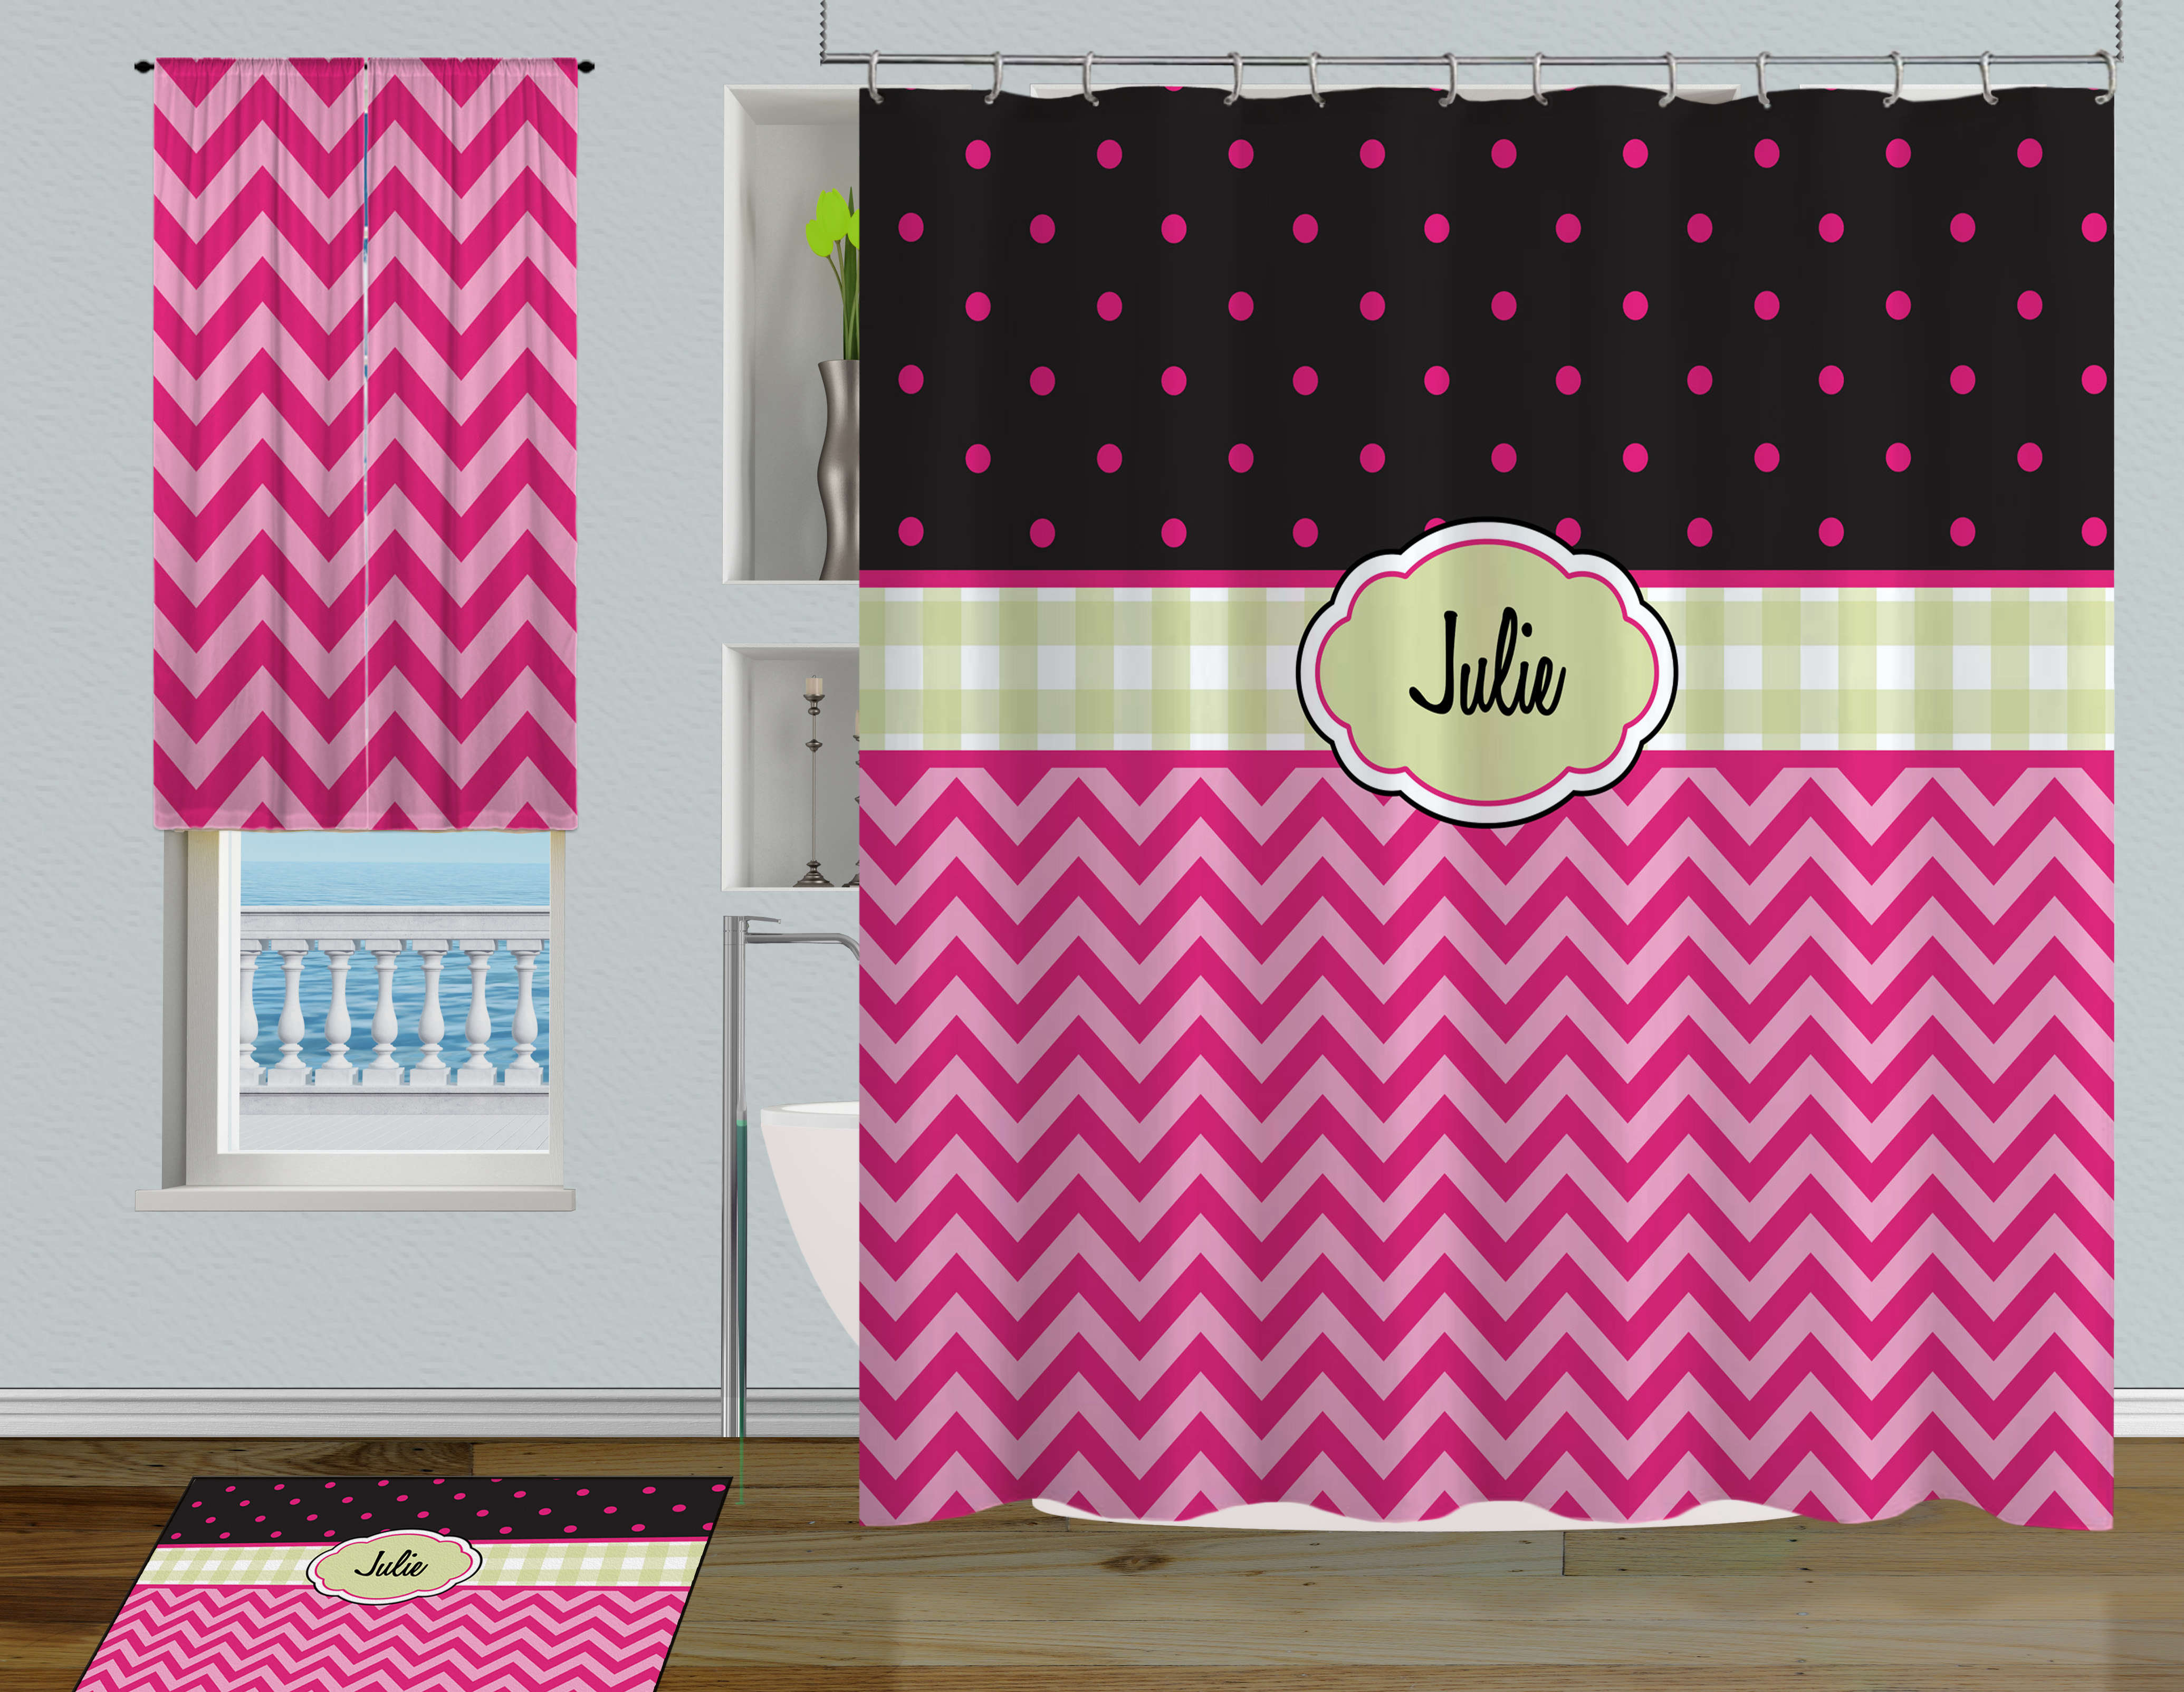 Pink And Green Polka Dot Childrens Shower Curtain With Chevron